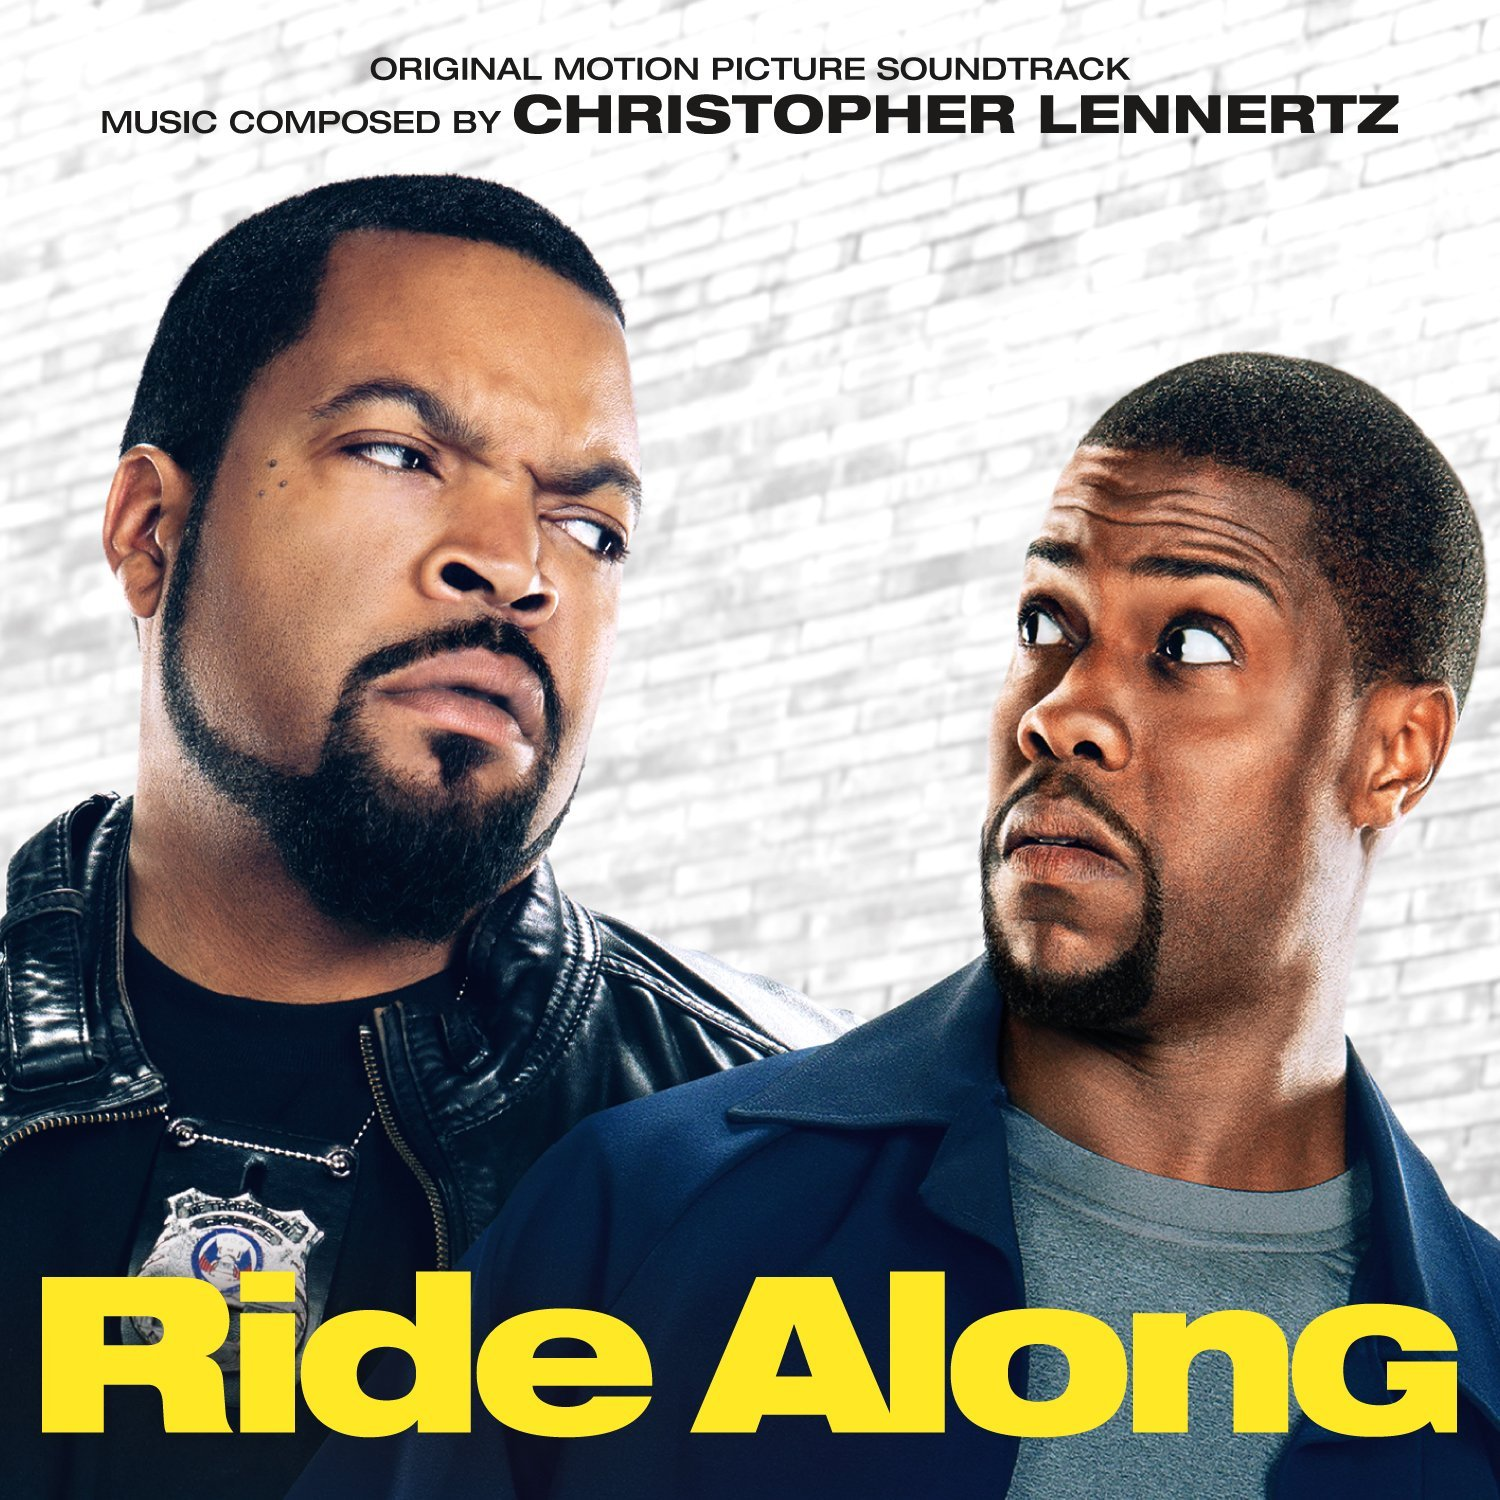 Ride Along (Music Composed by Christopher Lennertz)